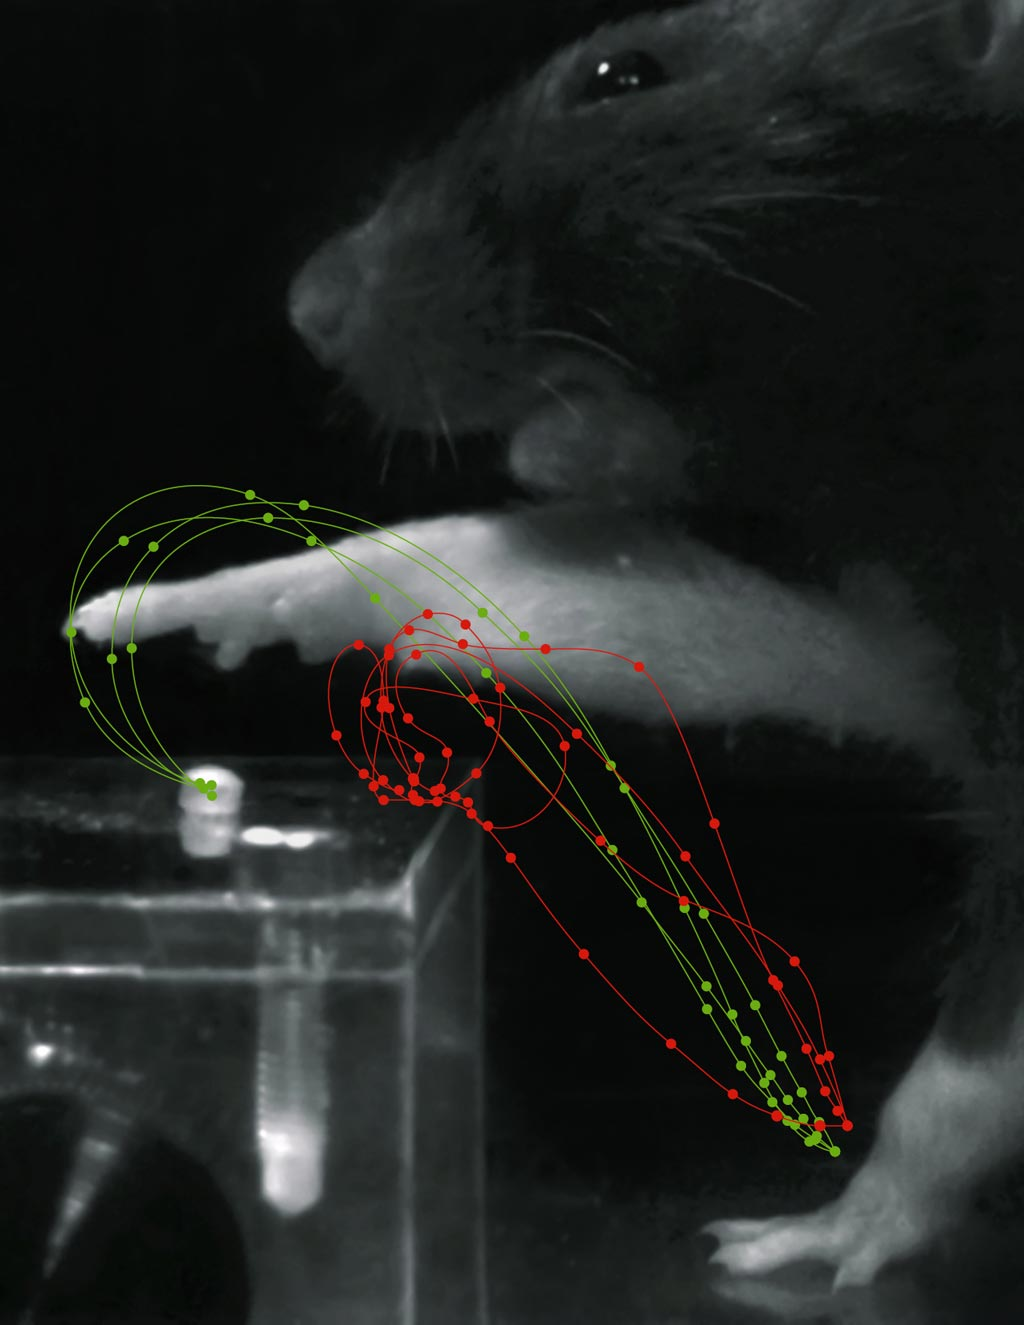 Image: Red trajectories show grasp movements after stroke, while green trajectories show rehabilitation (Photo courtesy of Tabea Kraus/ ETH).